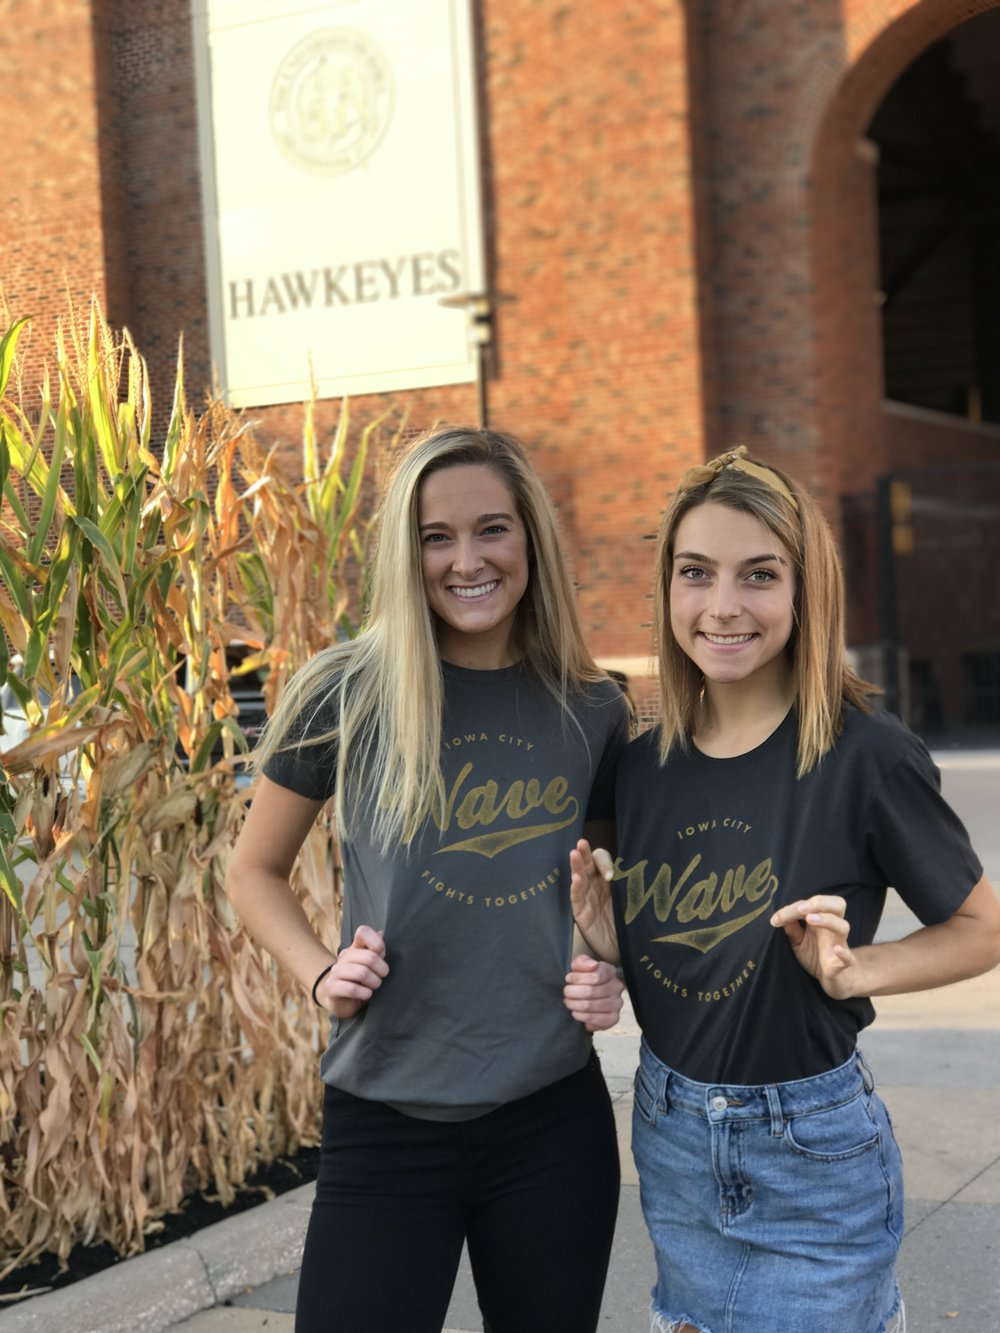 iowa_wave_shirt_hawkeye_chi_omega_childrens_hospital_ftk.JPG